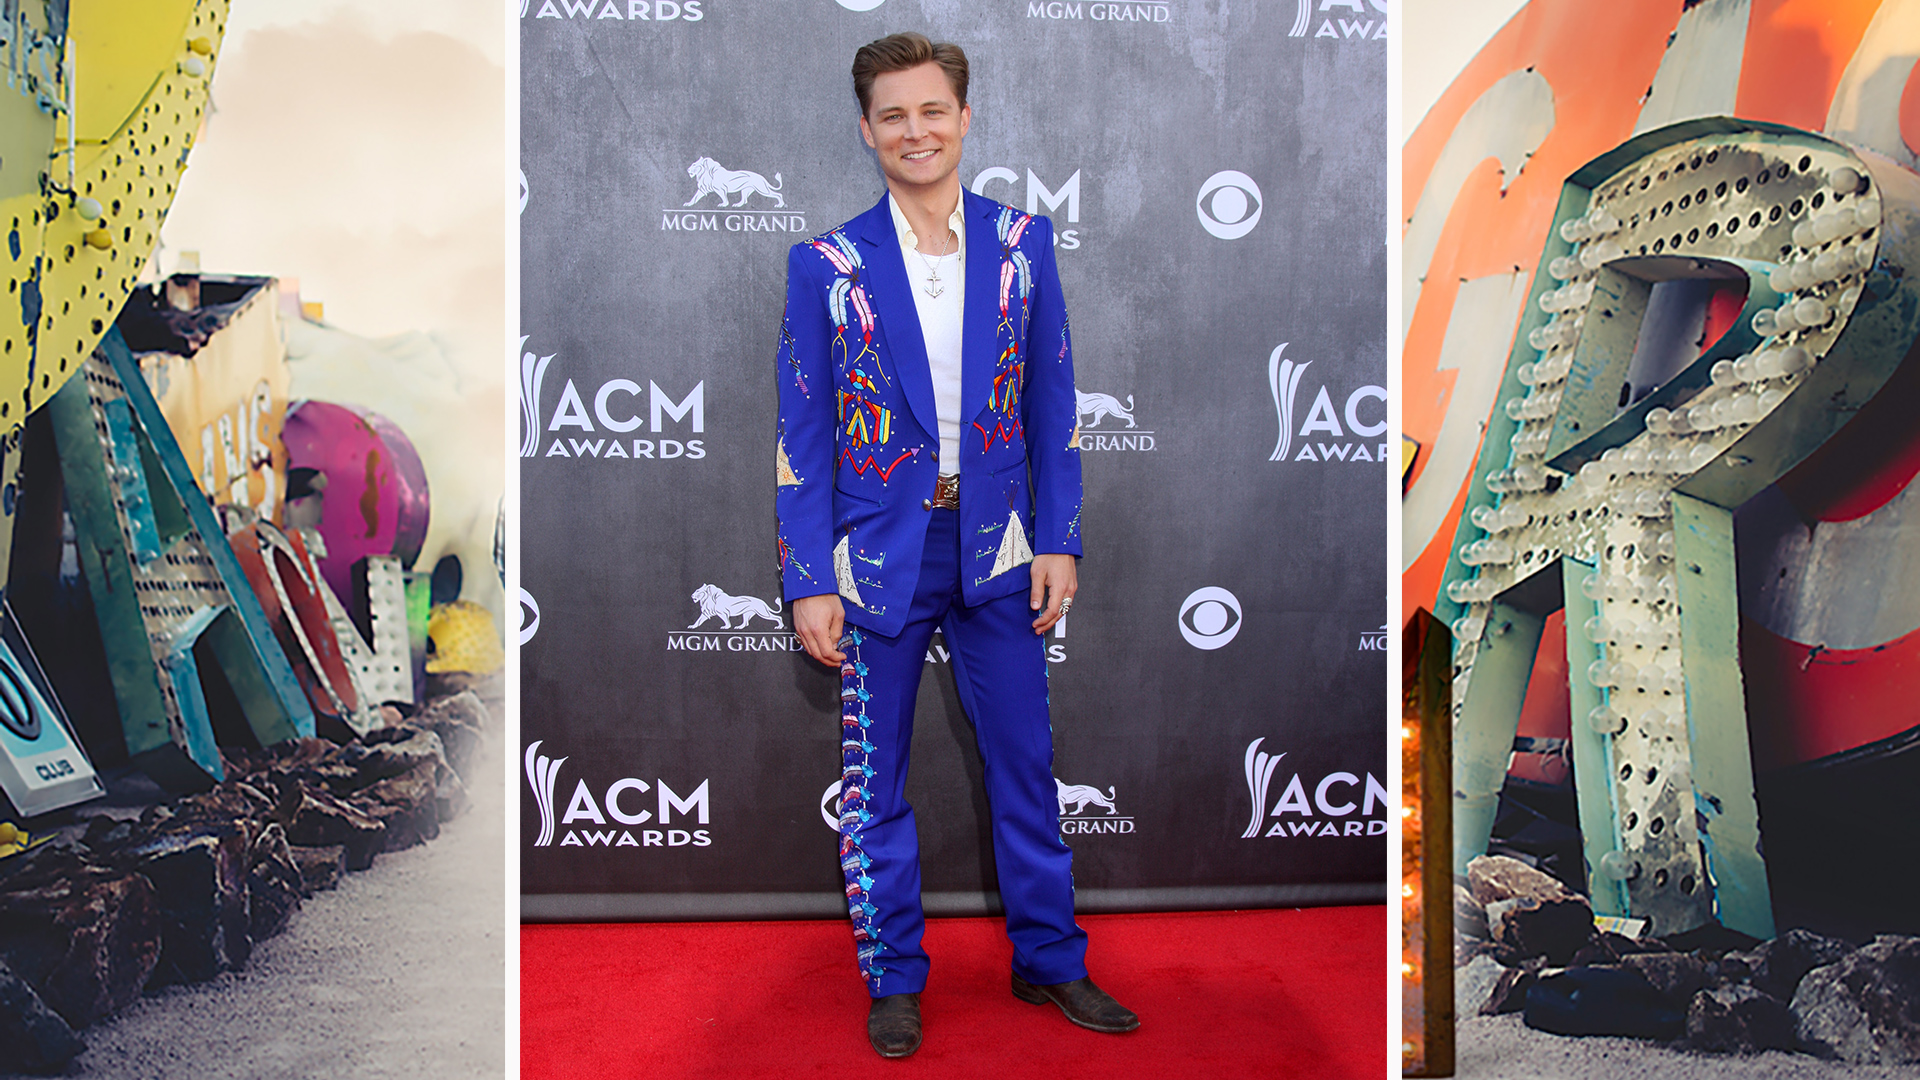 Frankie Ballard dances through the night in electric blue threads.